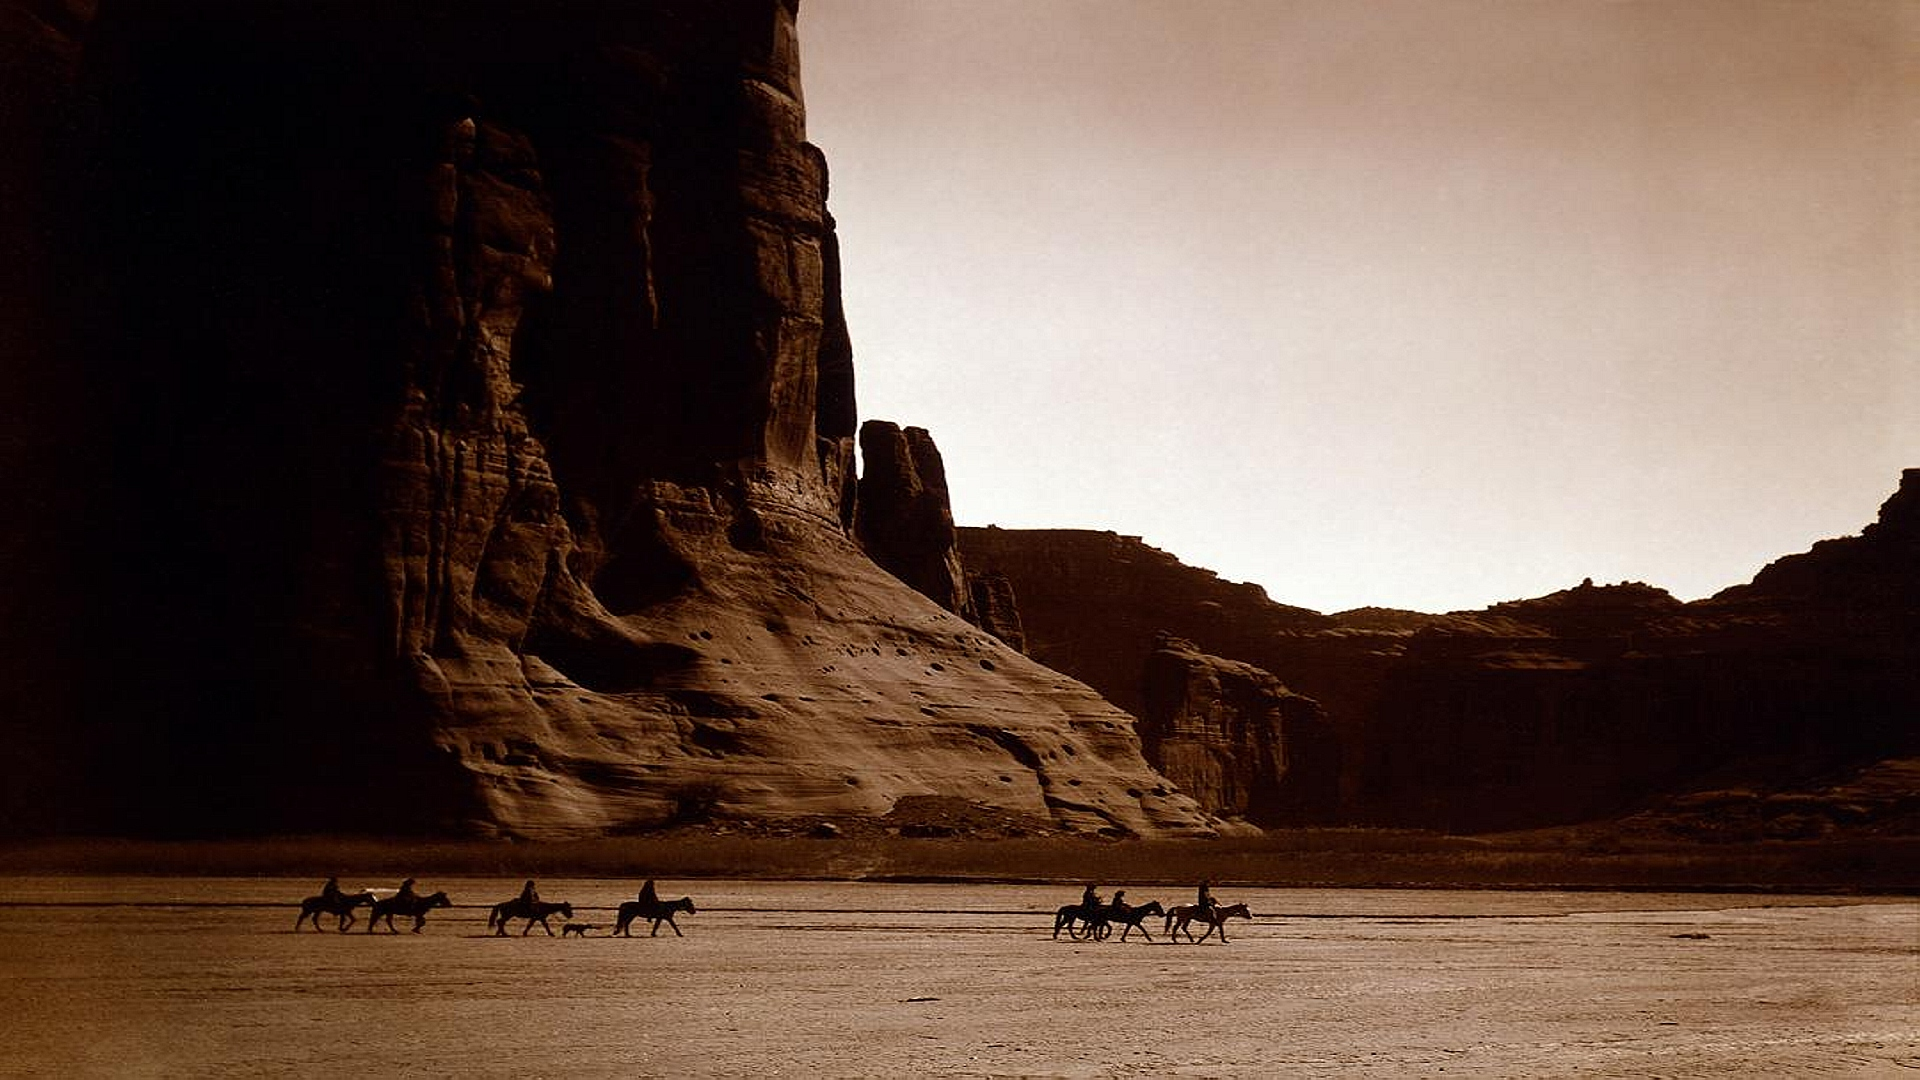 Canyon de Chelly, Navajo, USA. Photo by Edward S. Curtis, 1904